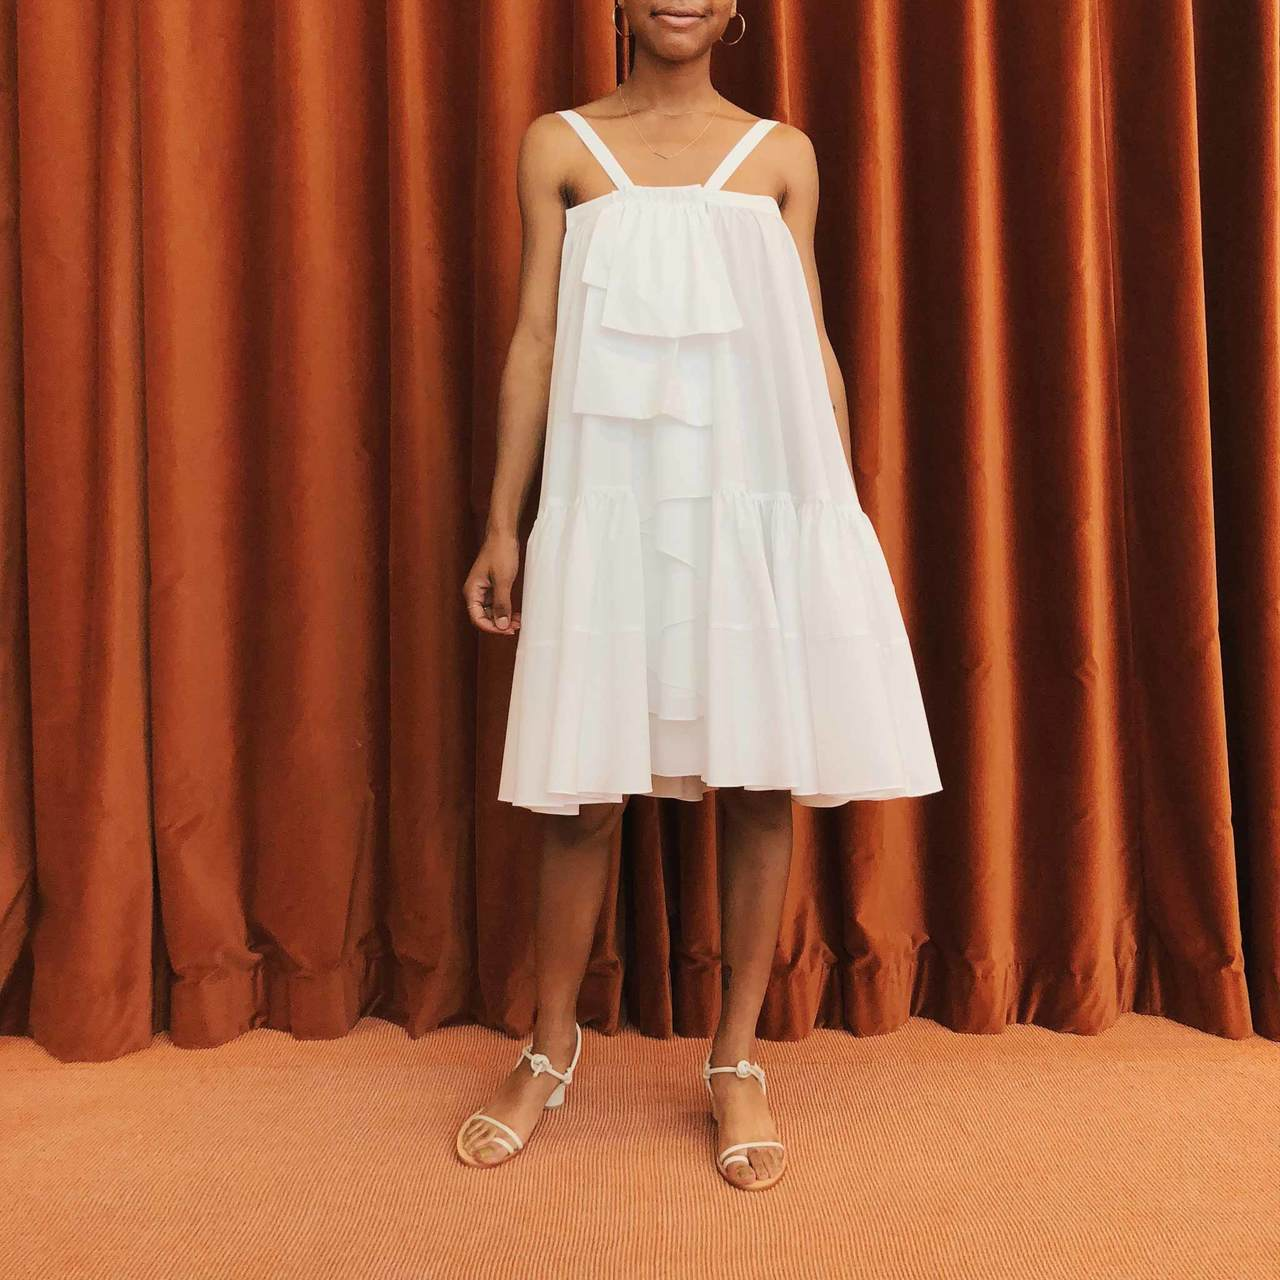 Creatures of Comfort - Tobias Dress - White, available at LCD